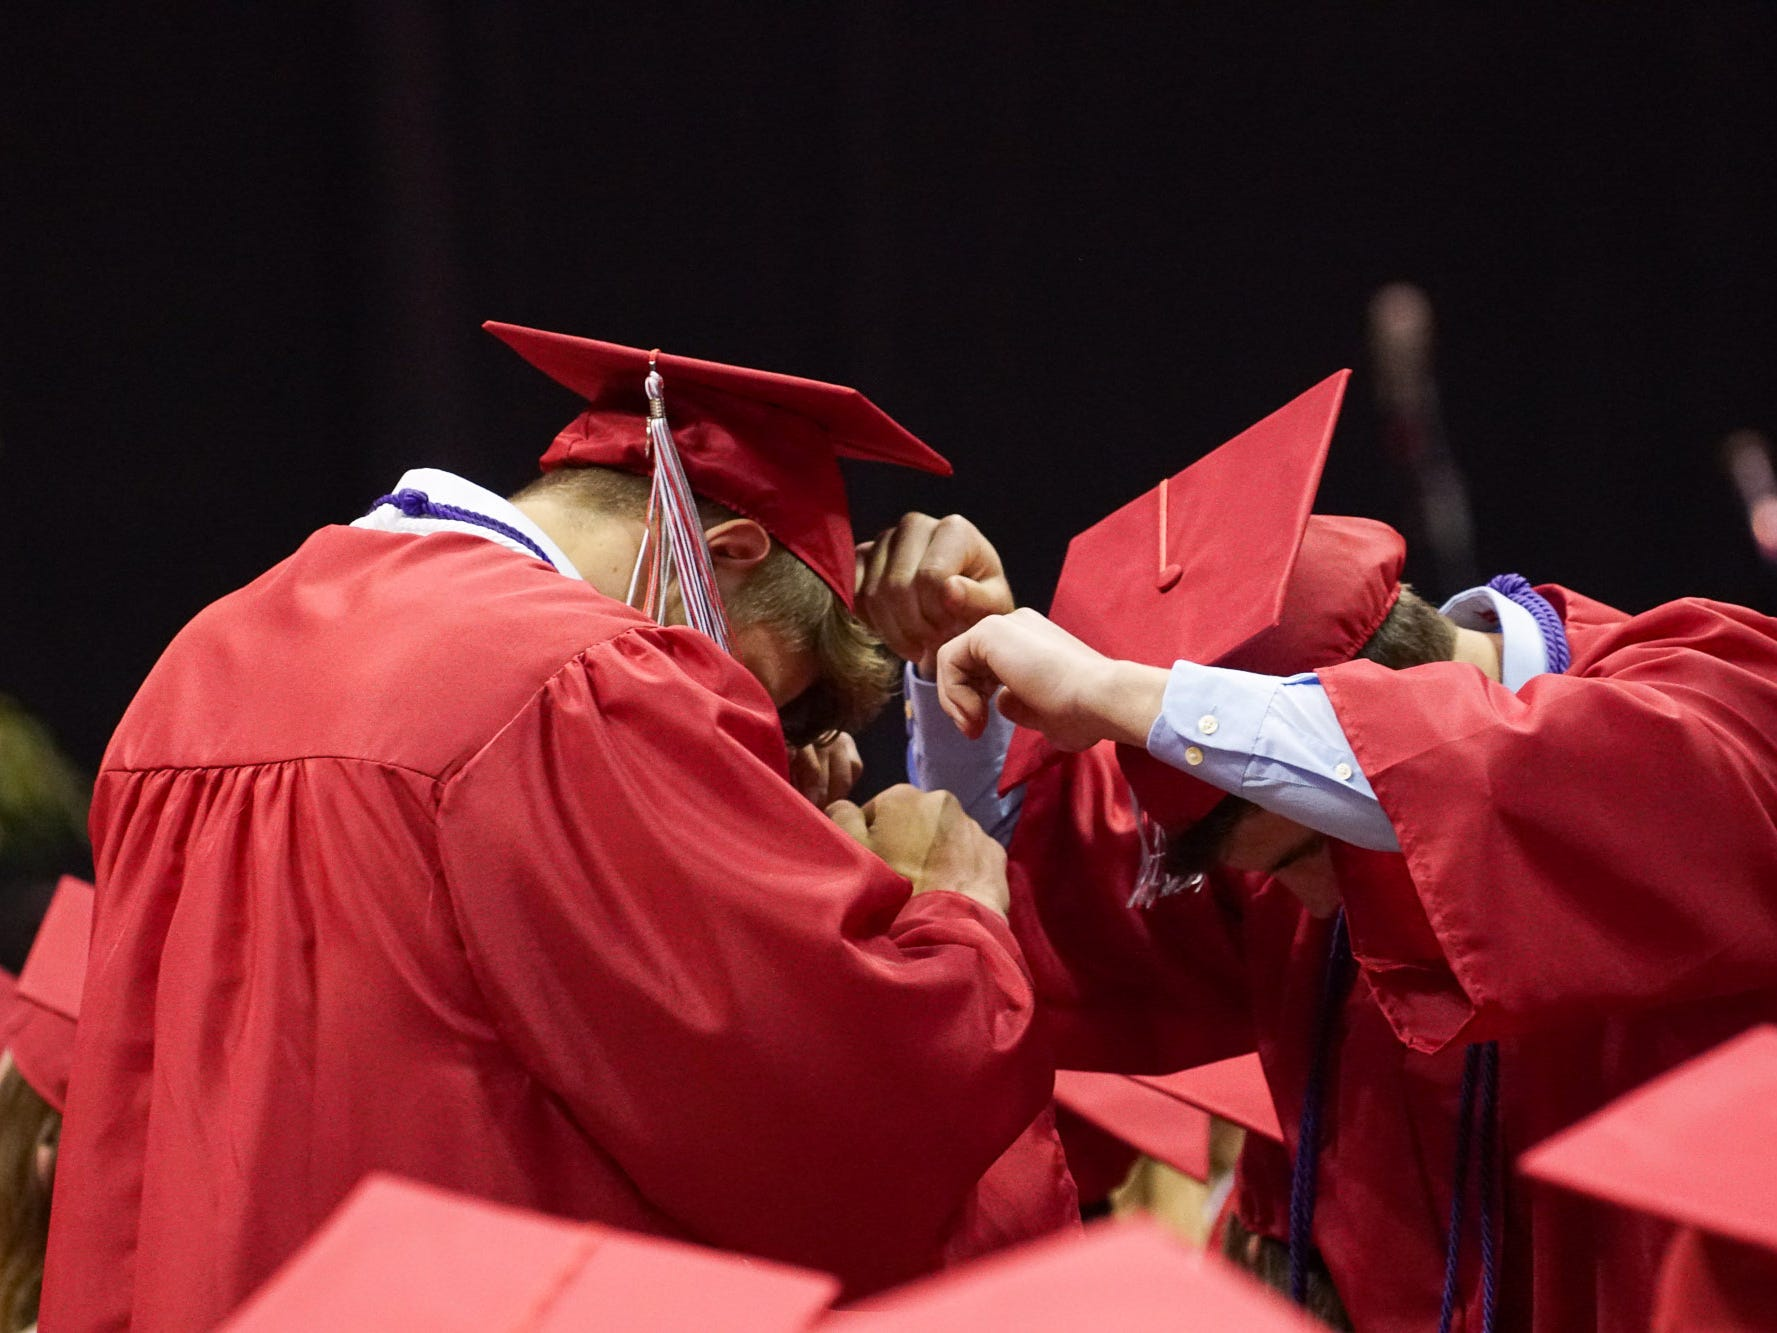 Nixa High School's Class of 2019 graduation ceremony took place at JQH Sunday, May 12, 2019.